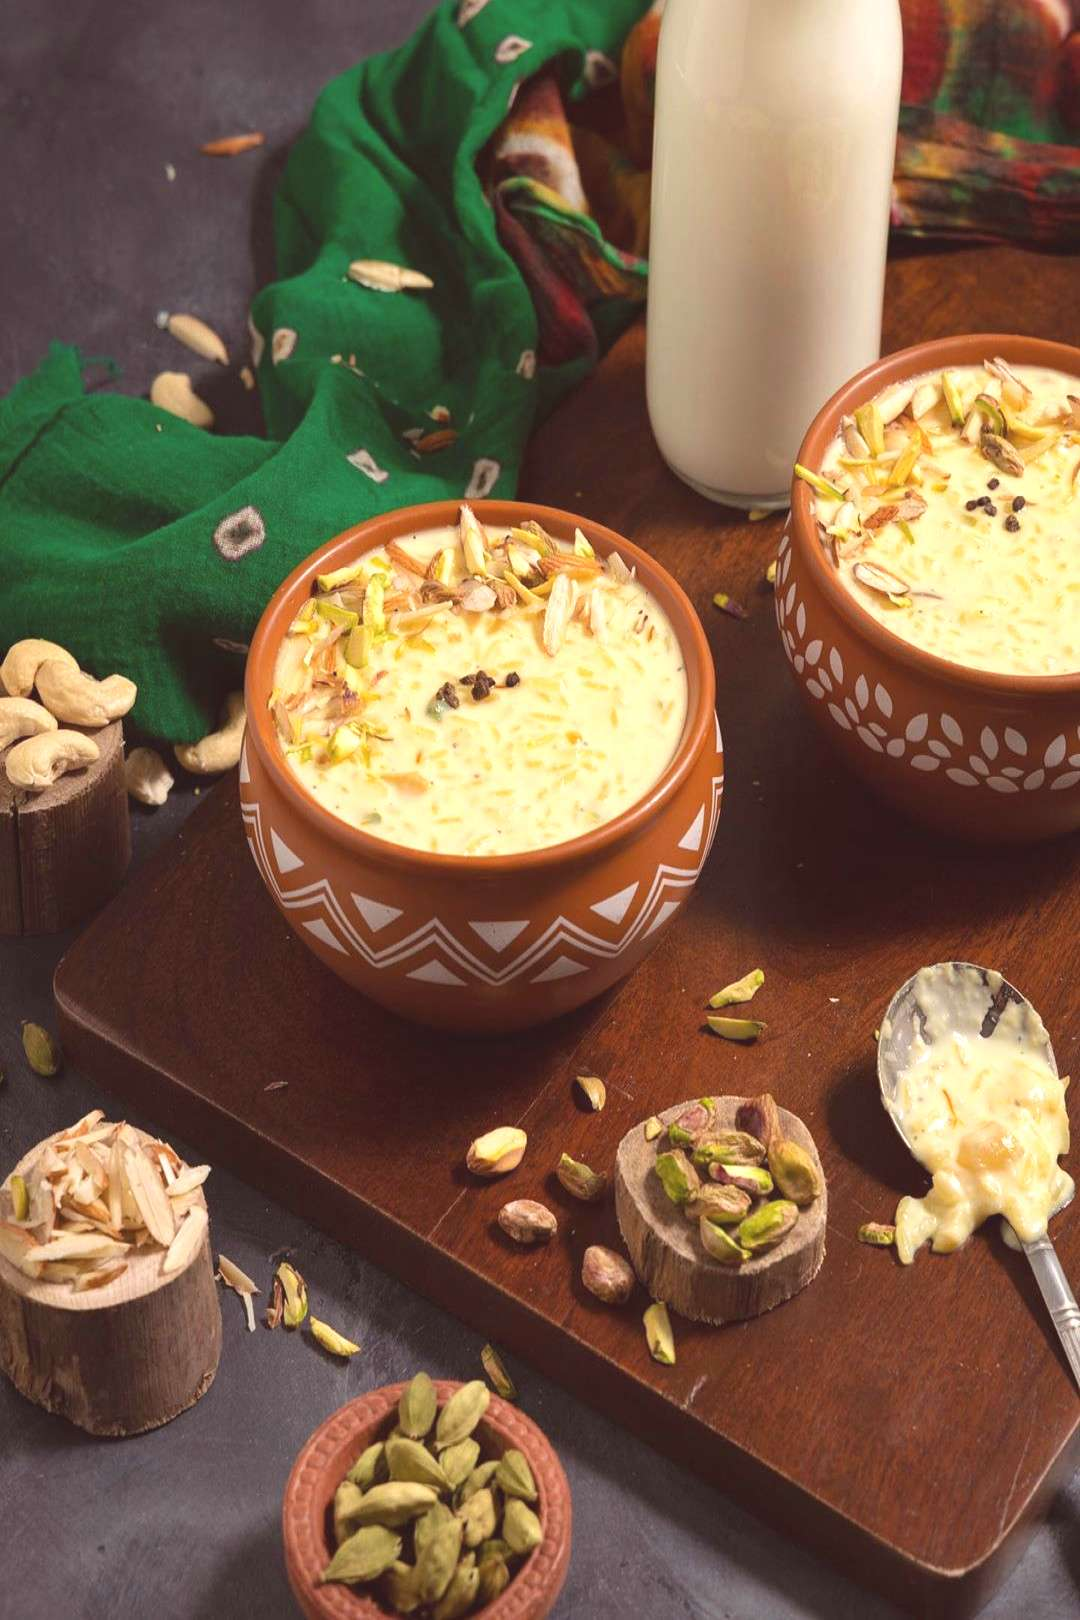 Indian rice pudding or rice kheer recipe is creamy and aromatic I